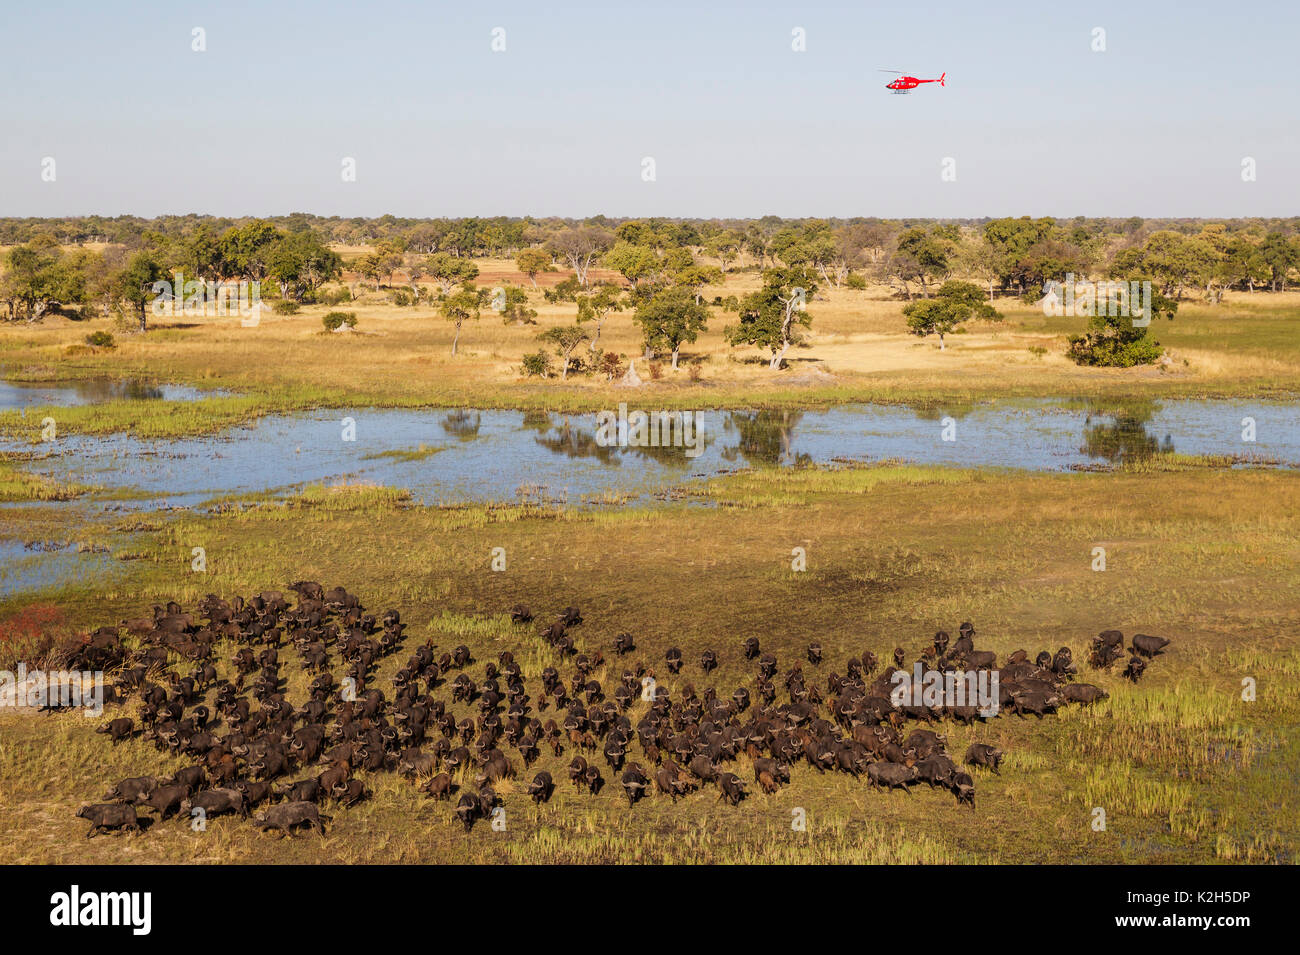 African Buffalo, Cape Buffalo (Syncerus caffer) herd roaming through the freshwater marsh, the helicopter is on a scenic flight, aerial view - Stock Image